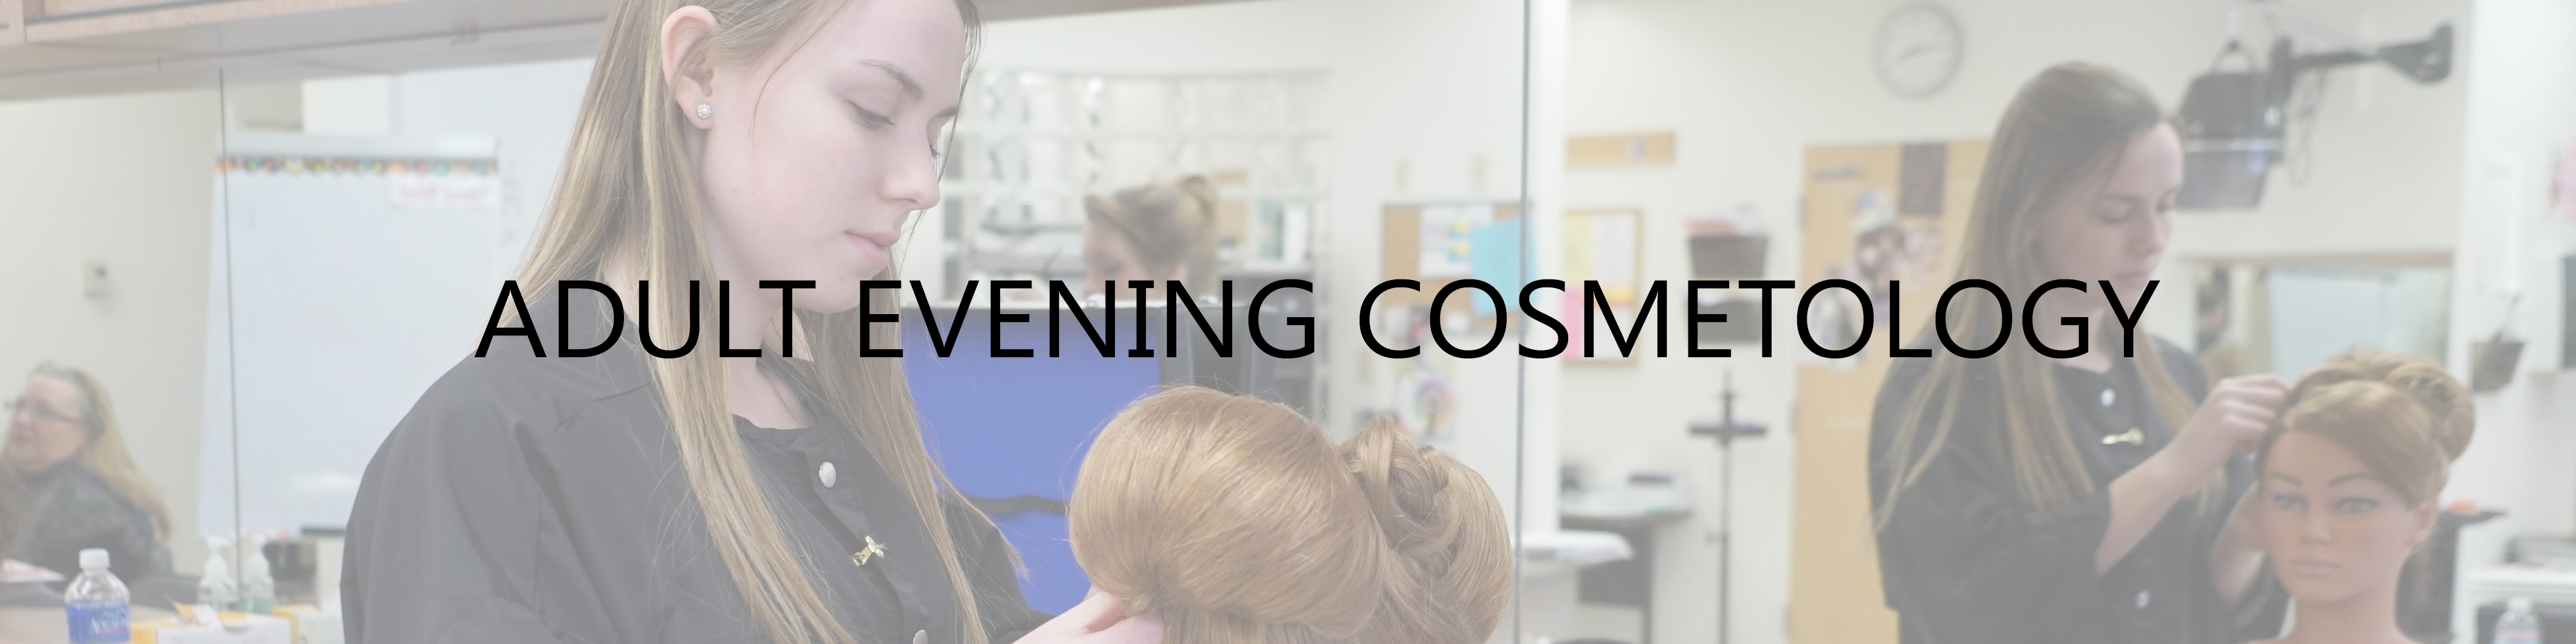 Adult Evening Cosmetology woman cutting hair